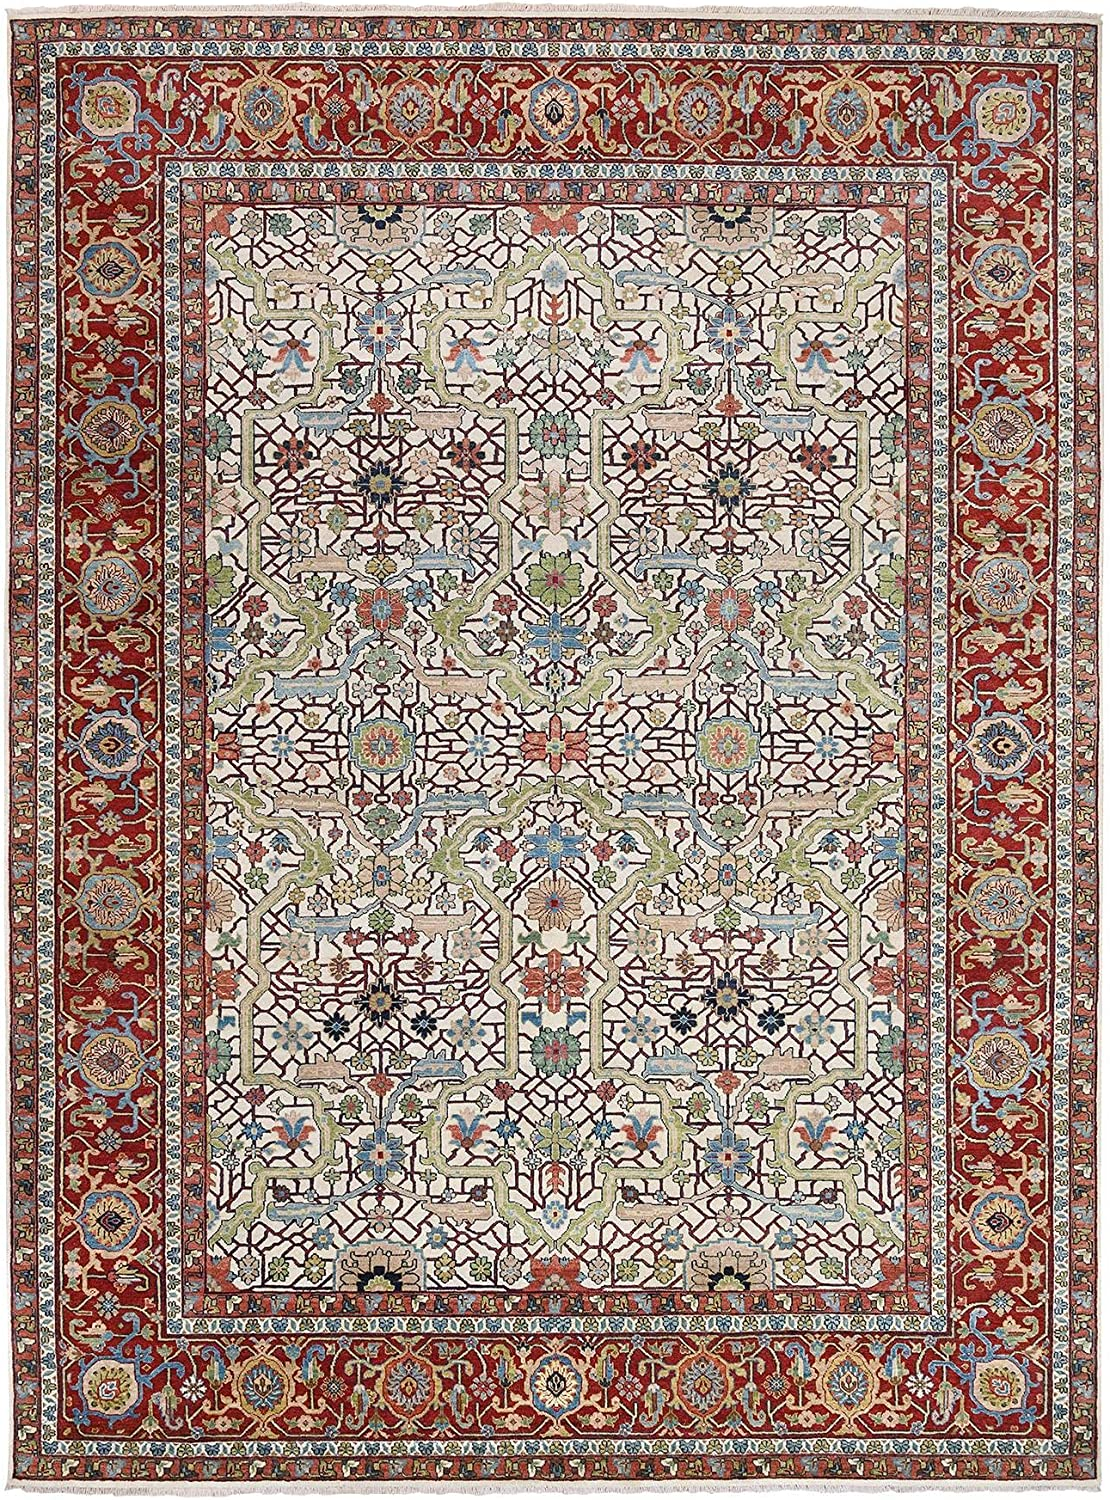 Shahbanu Rugs Pure Wool Natural Dyes Hand Ru Finally It is very popular popular brand Heris Beige Knotted